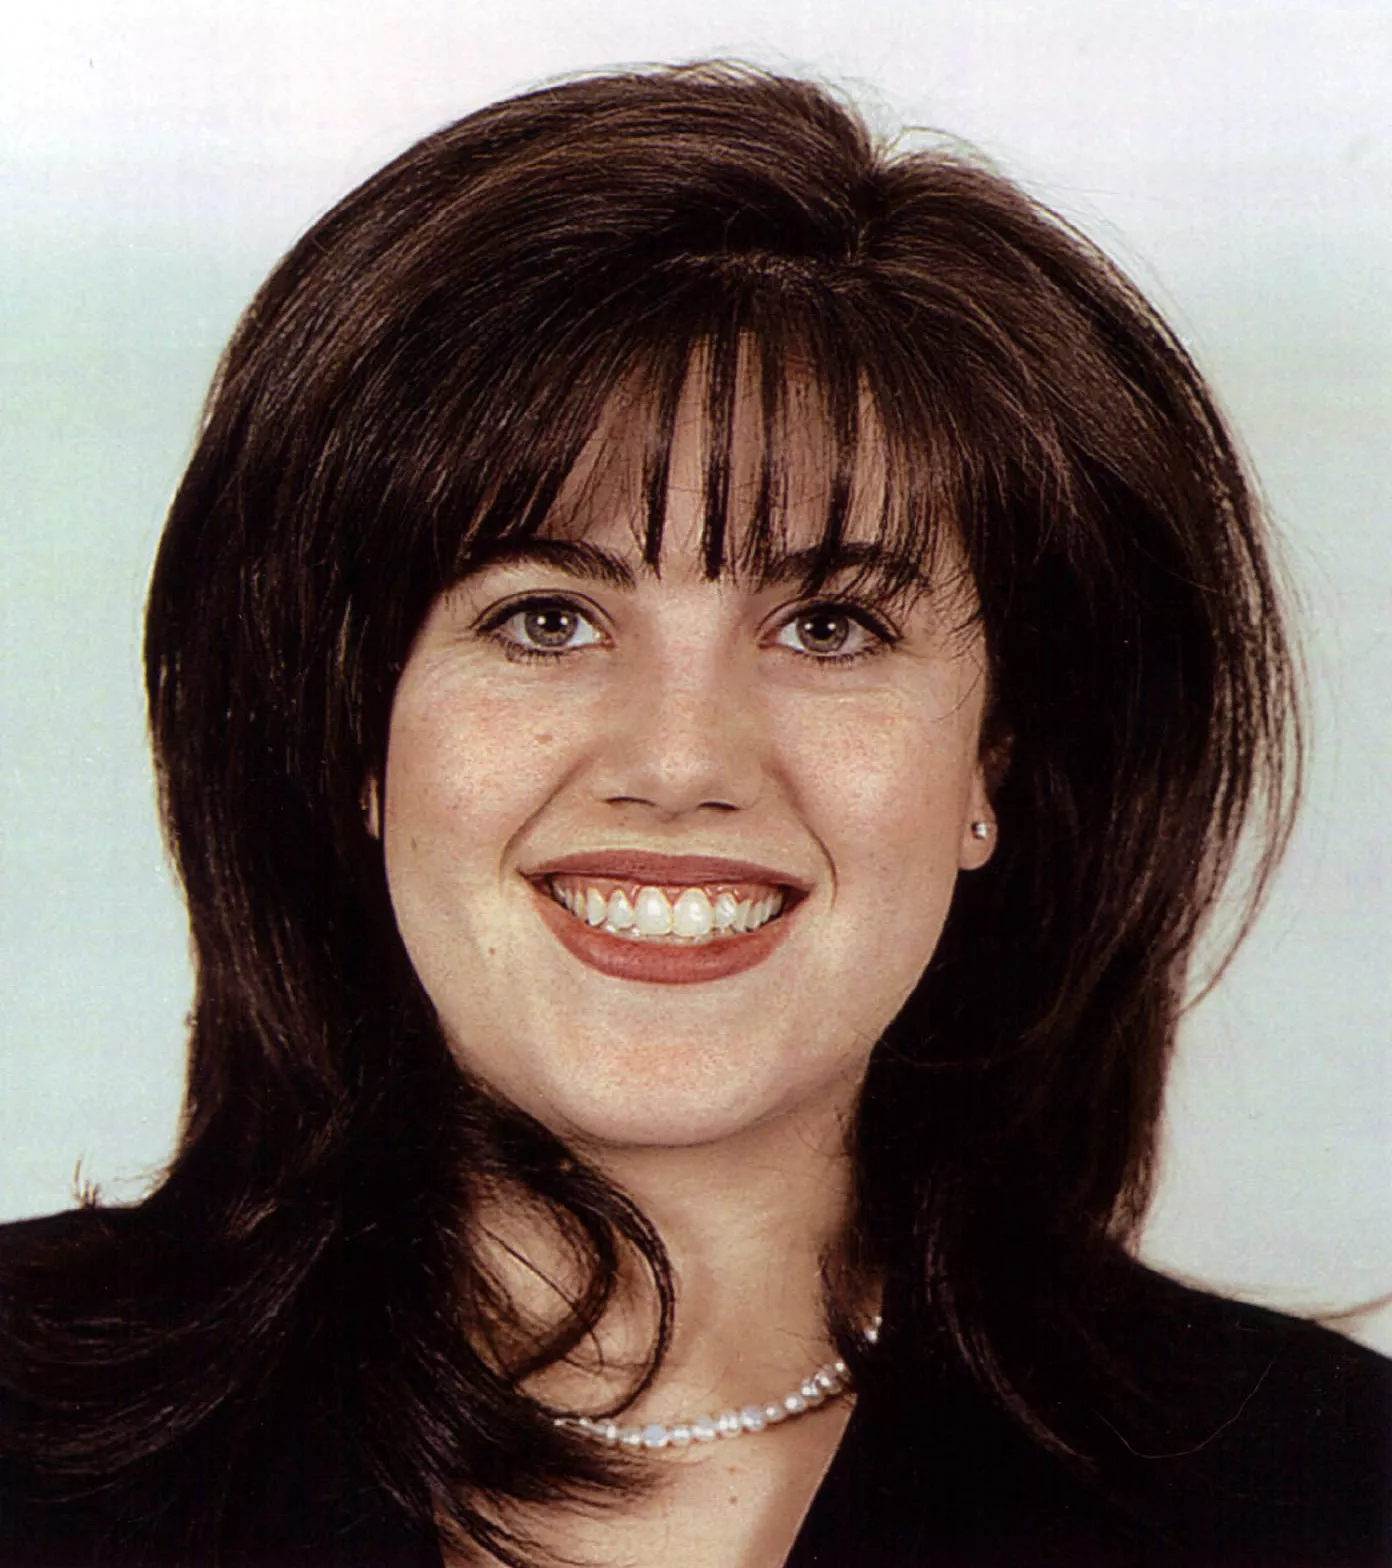 http://upload.wikimedia.org/wikipedia/commons/5/57/Monica_lewinsky.jpg